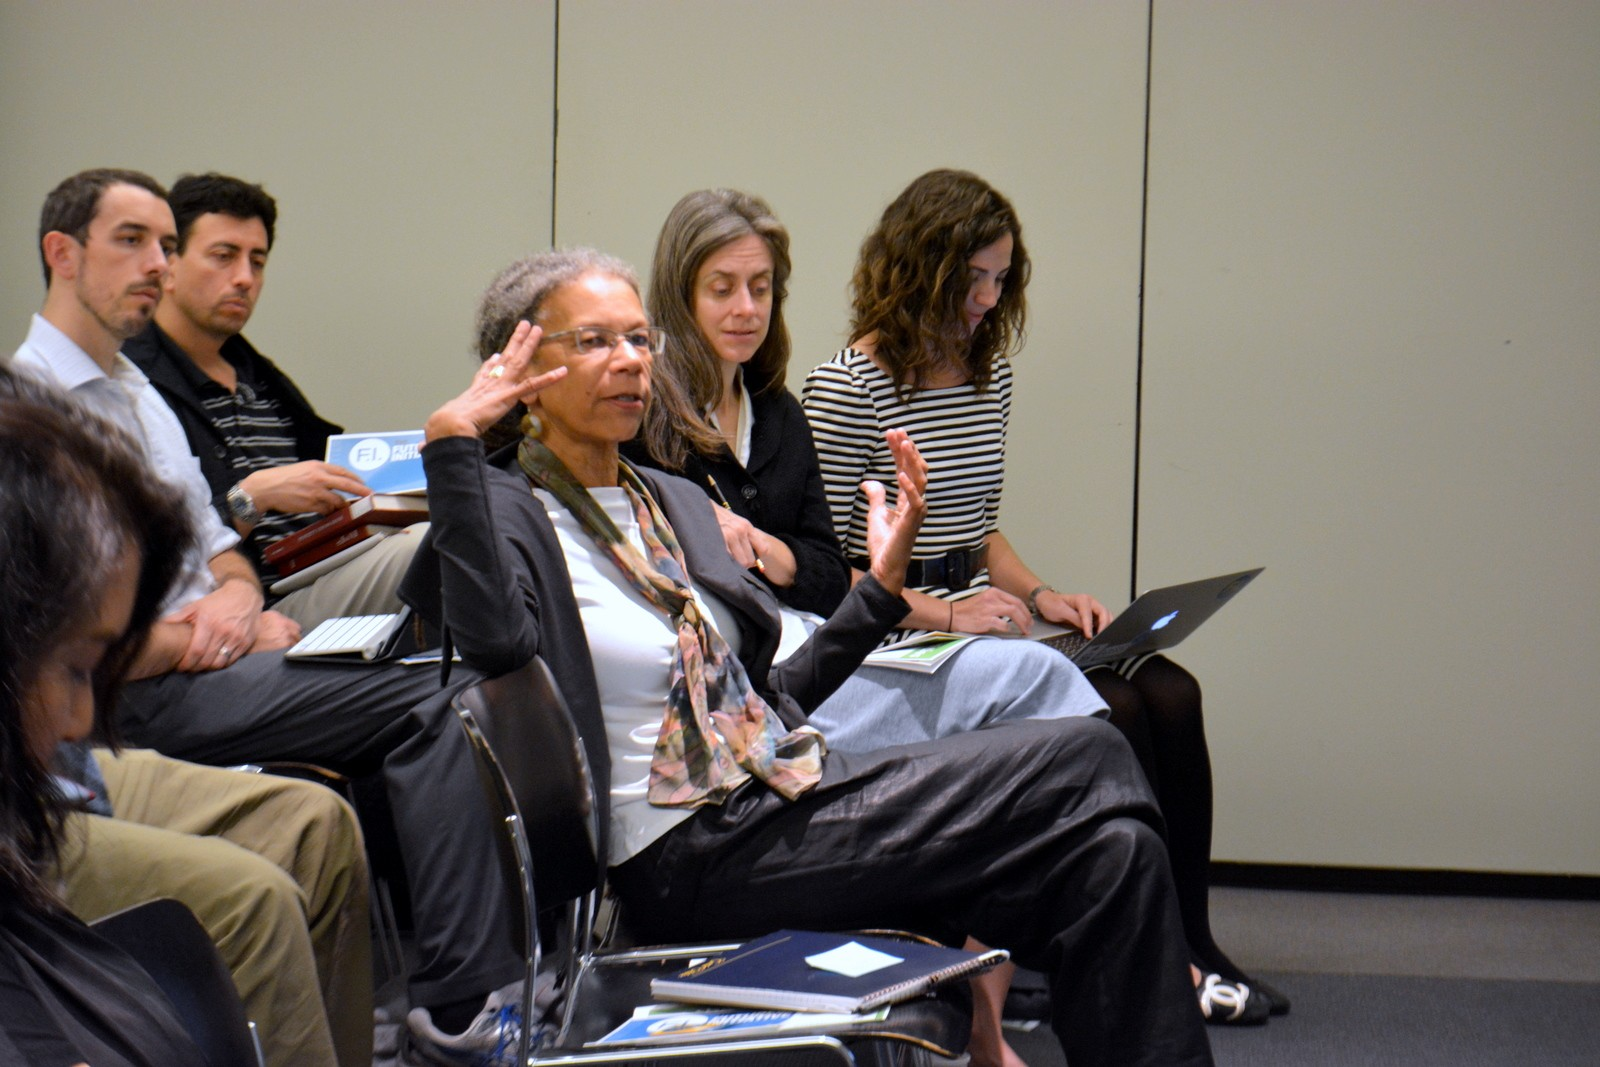 Ruth Wilson Gilmore weighs in during the discussion at the 10/22/15 Futures Initiative event